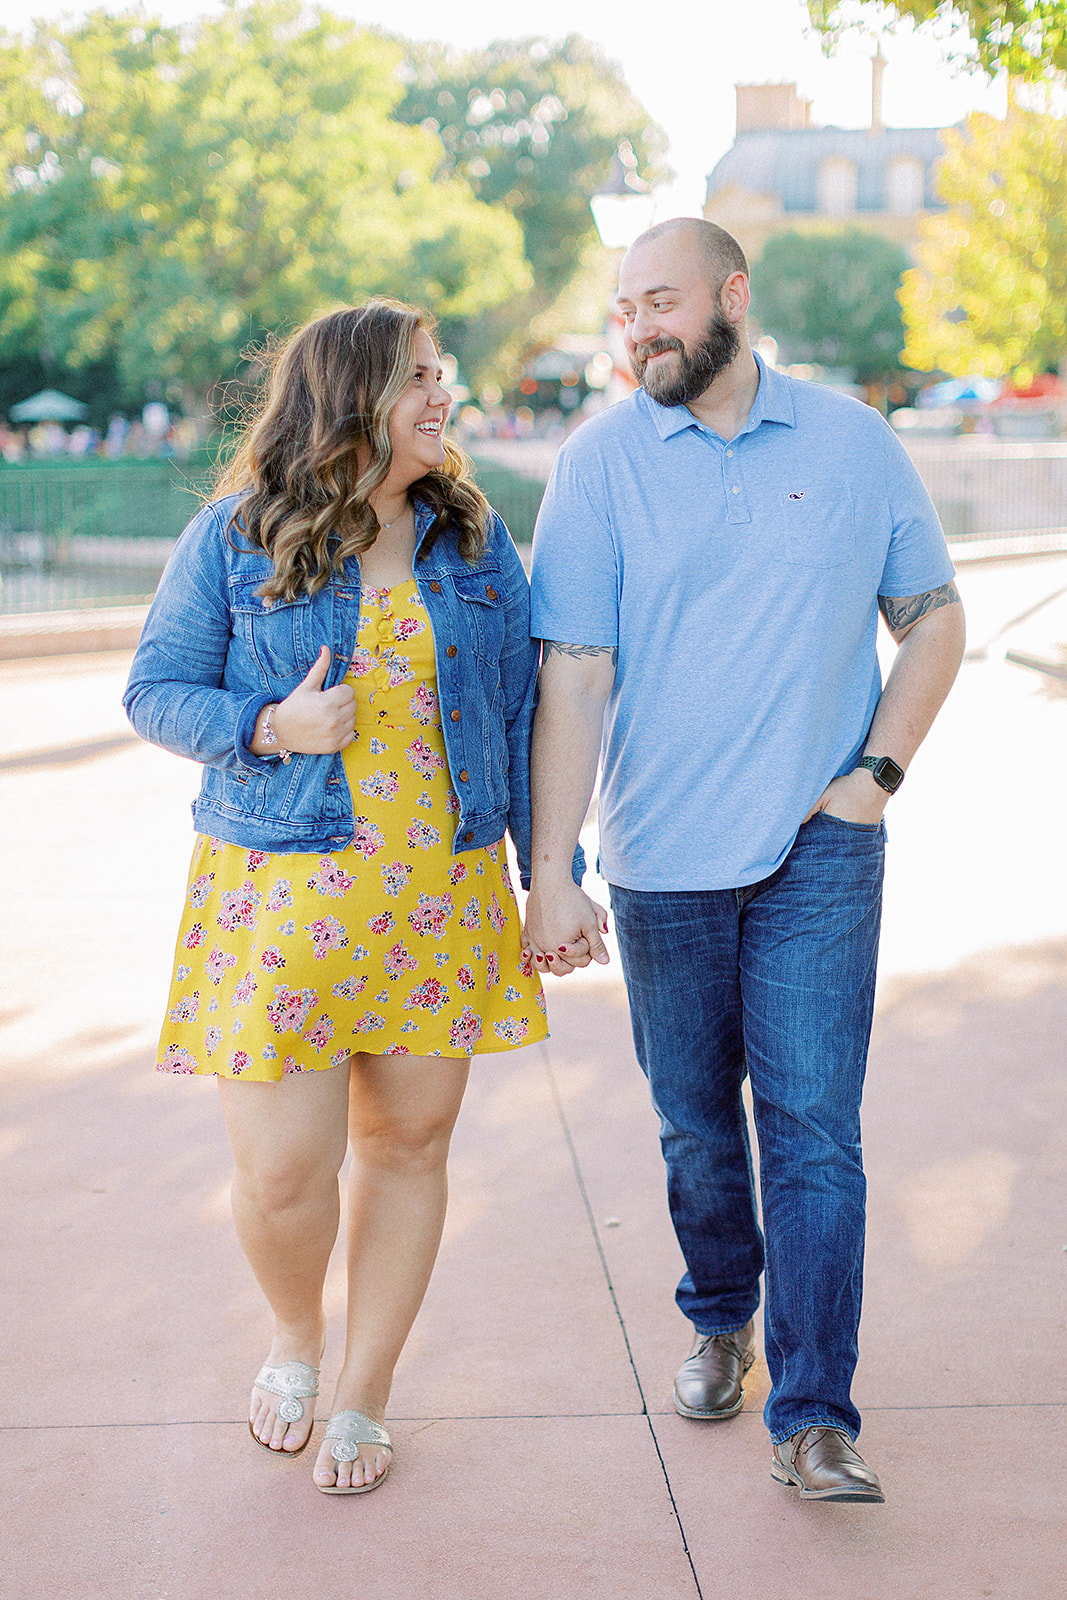 Larisa_+_Craig_Disney_Epcot_Boardwalk_Resort_Engagement_Session_Photographer_Casie_Marie_Photography-8